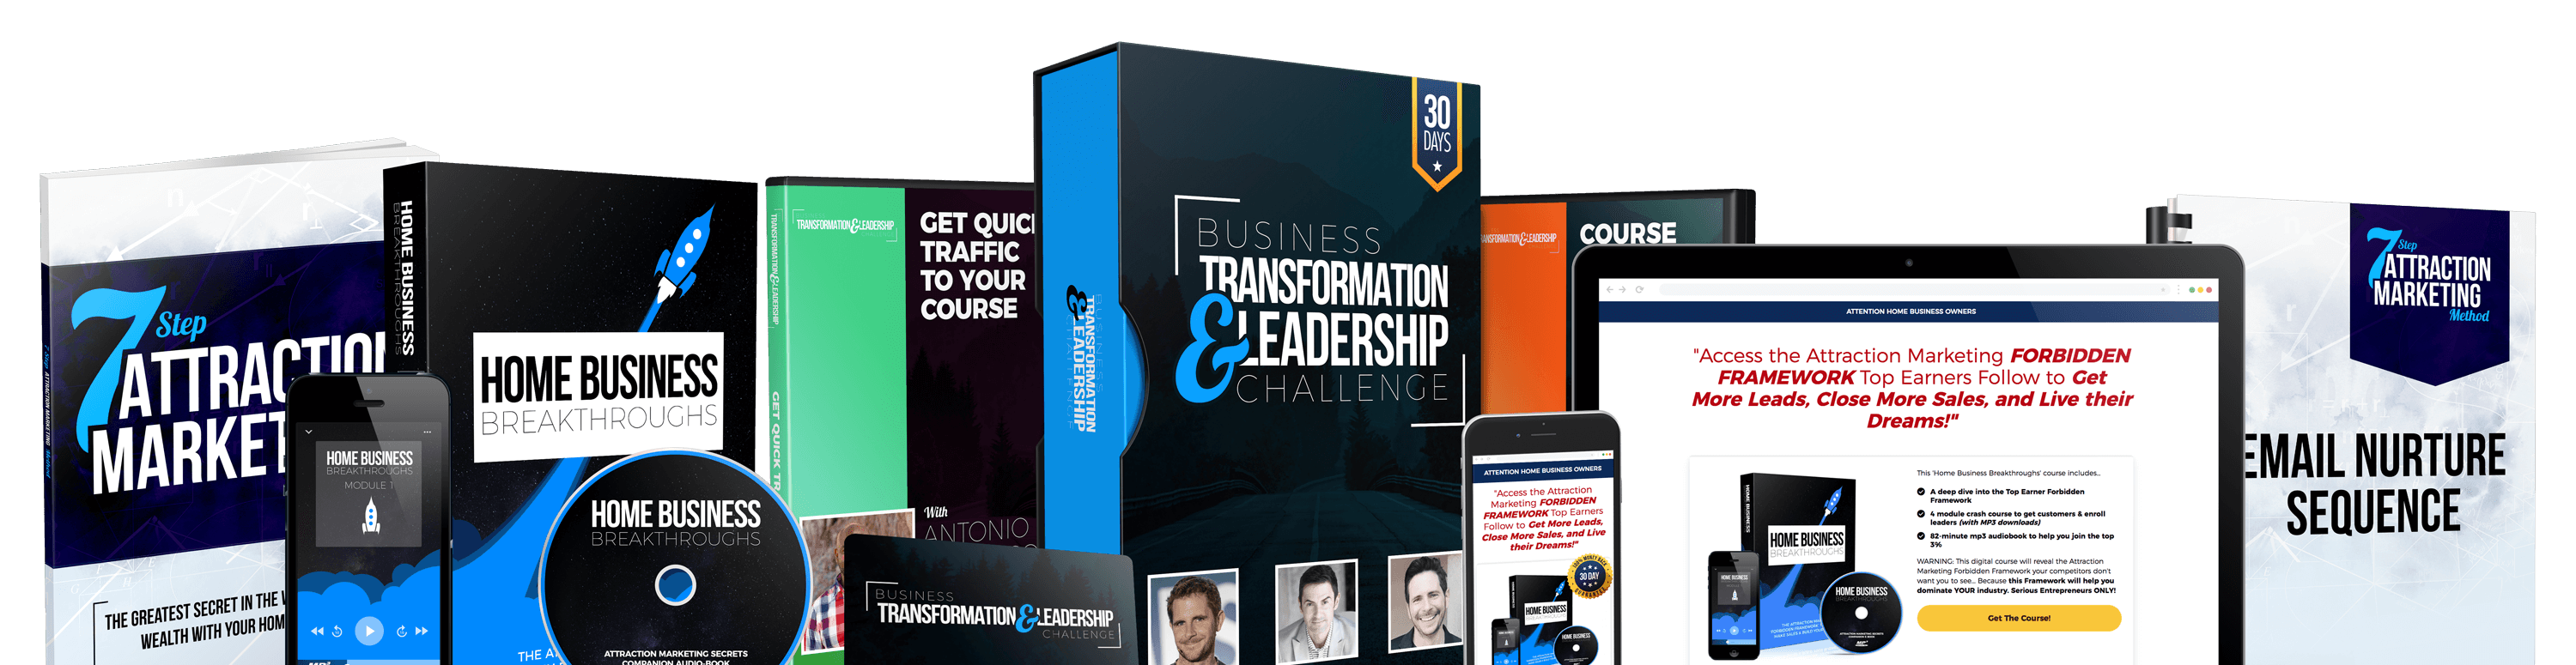 MLSP Business Transformation & Leadership Challenge